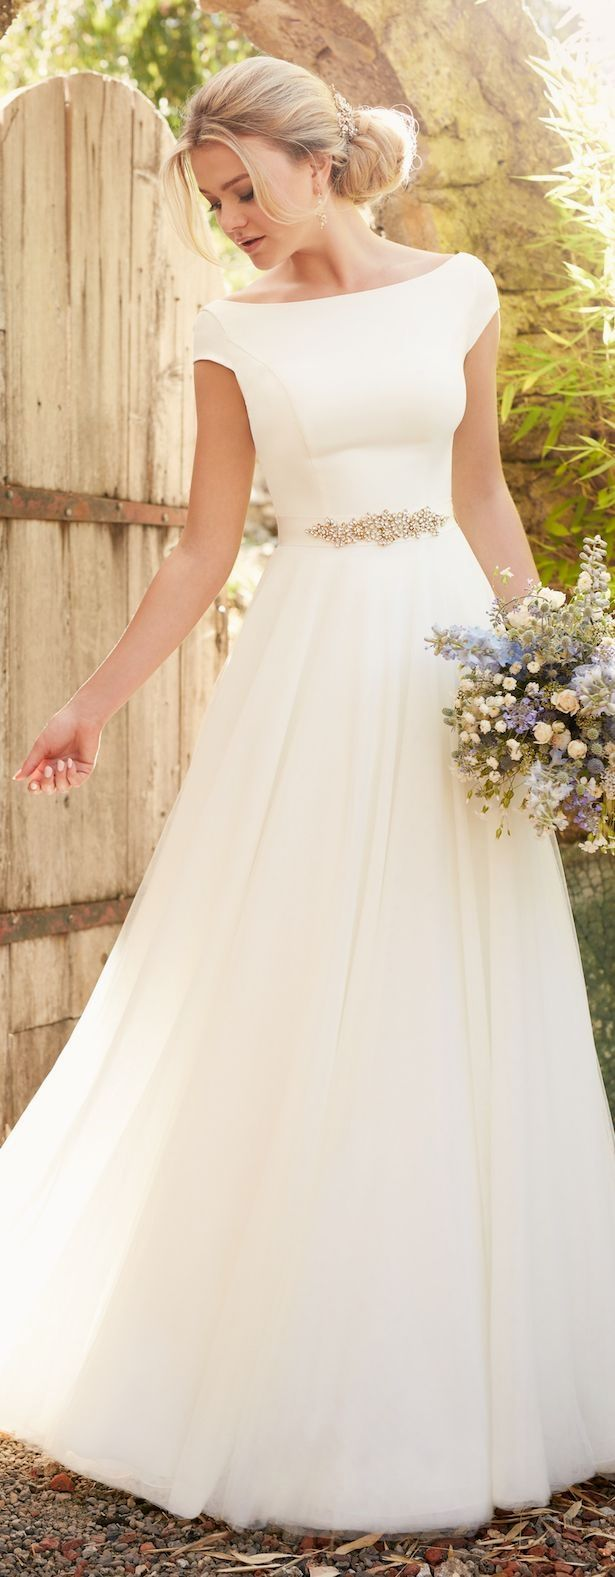 Best wedding dresses for my shape  Simple wedding dress Leave out the groom for the moment lets